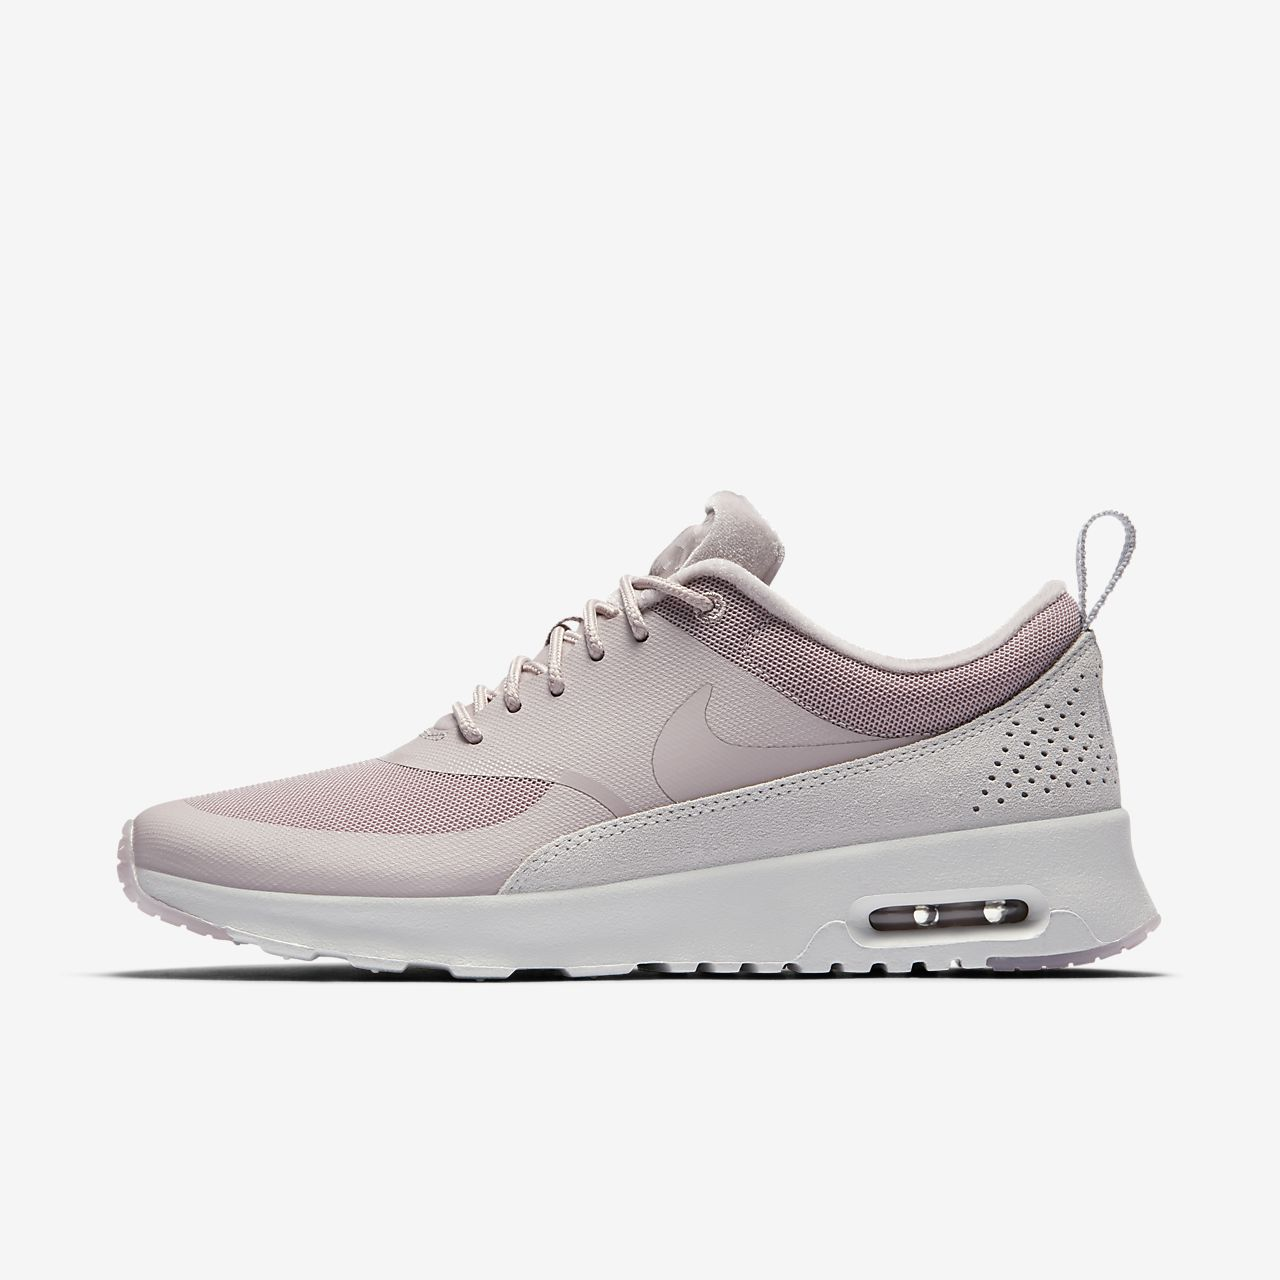 Womens Air Max Thea Premium Leather Low-Top Sneakers Nike Buy Cheap Footlocker Pictures ioiNRa2OH